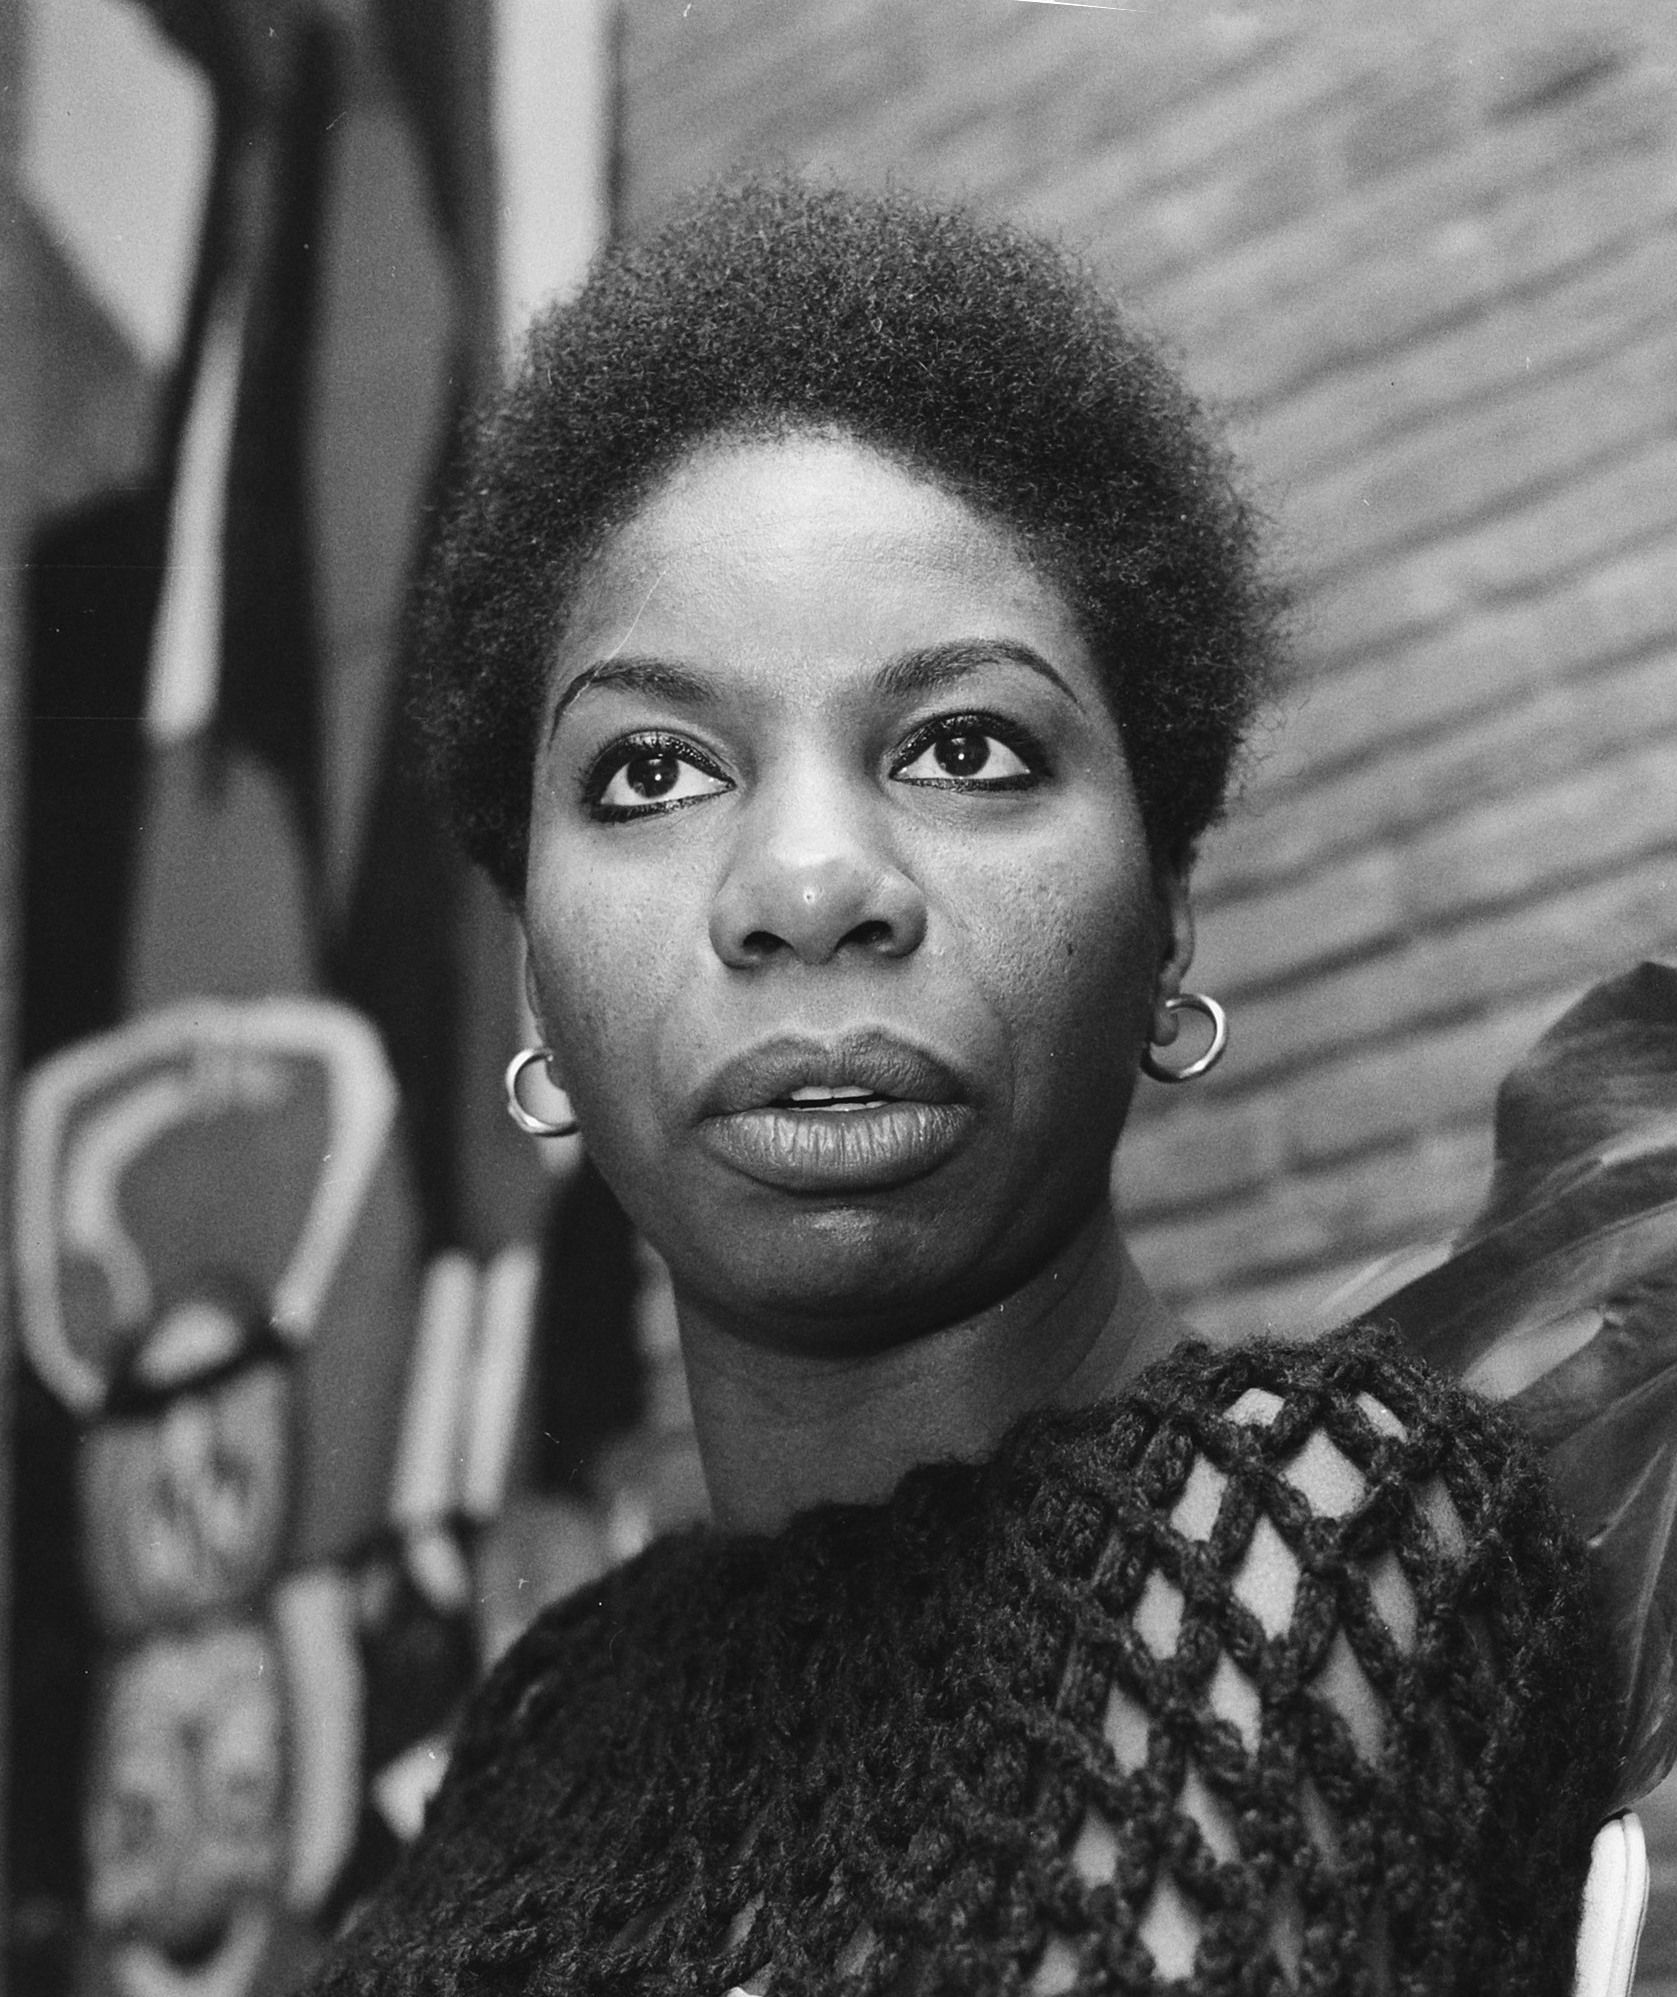 Photo of Nina Simone: American singer, songwriter, pianist, arranger, and civil rights activist